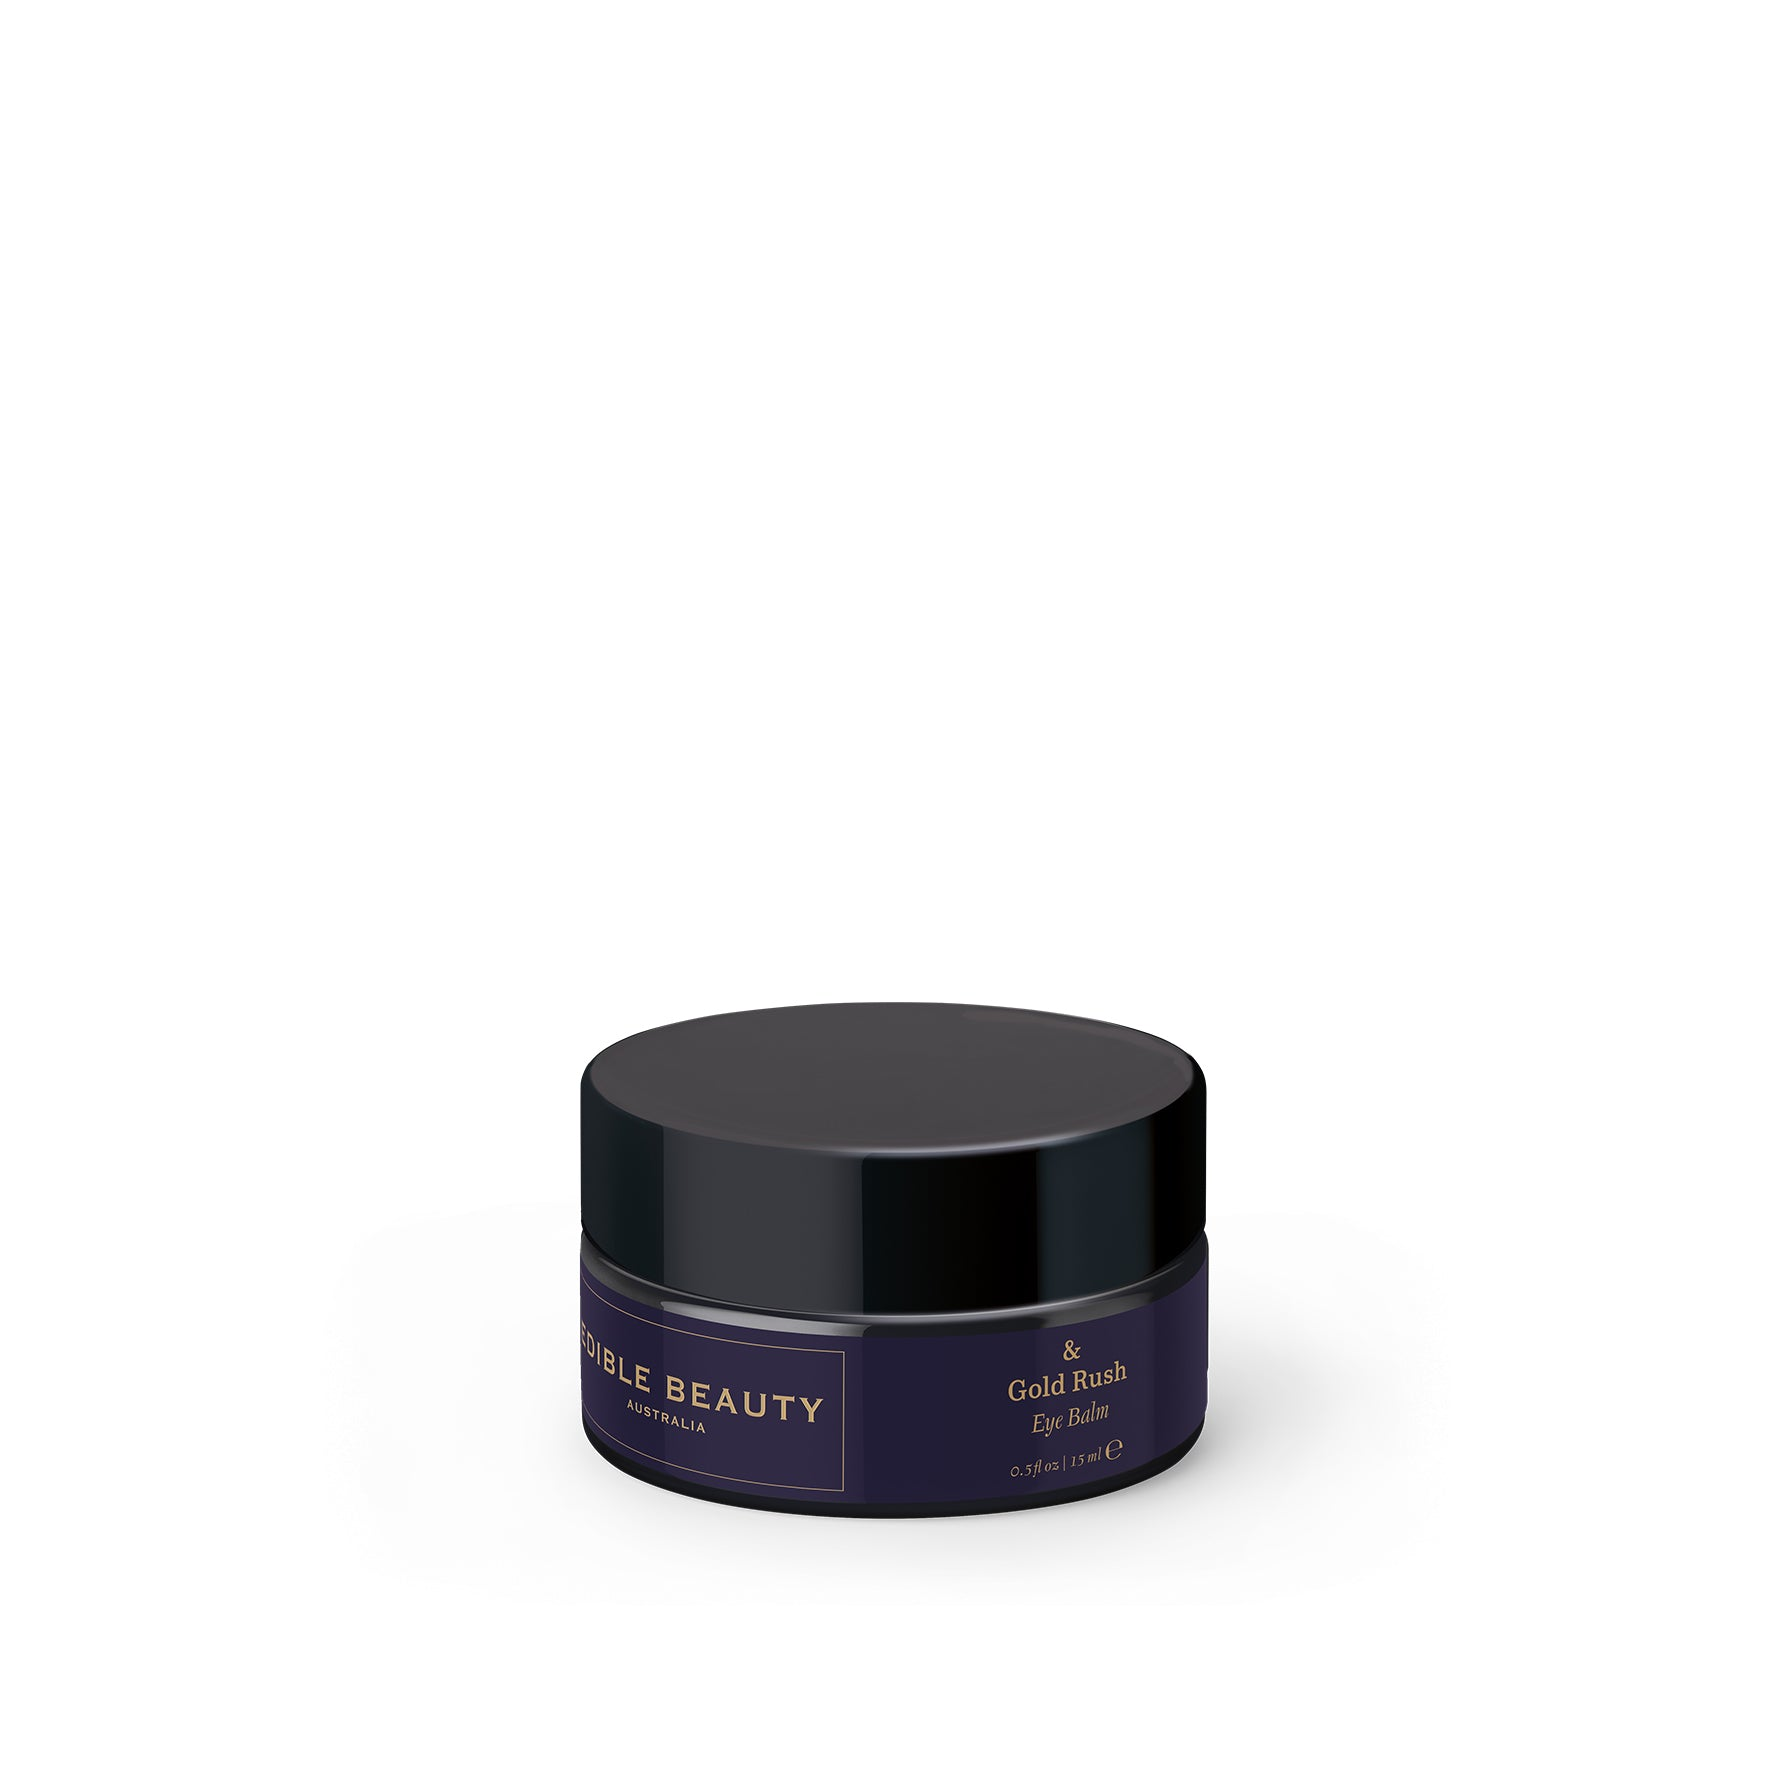 Edible Beauty, & Coco Bliss Intensive Repair - Night Creme, nachtcreme, Nourished, Clean Beauty, Clean skincare, Organic beauty, natural beauty, green beauty, &gold rush eye cream, oogcreme, natuurlijke oogcreme